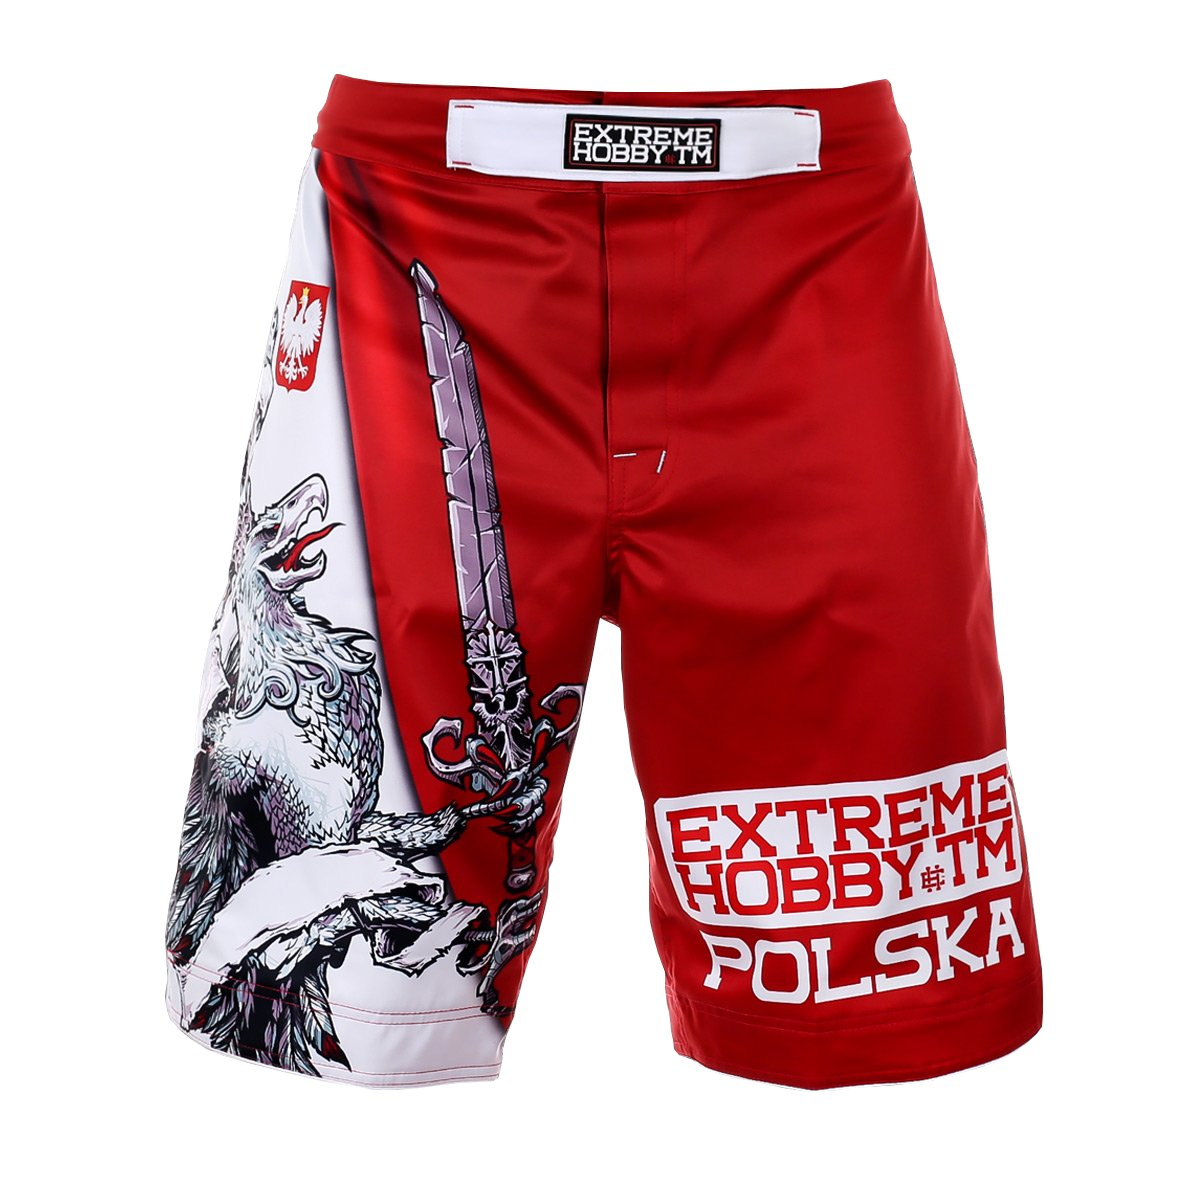 Extreme Hobby Weiß Eagle Poland Grappling Kampfsport Shorts Durability & Rivalry. MMA Fightwear. Training. Kampfsport